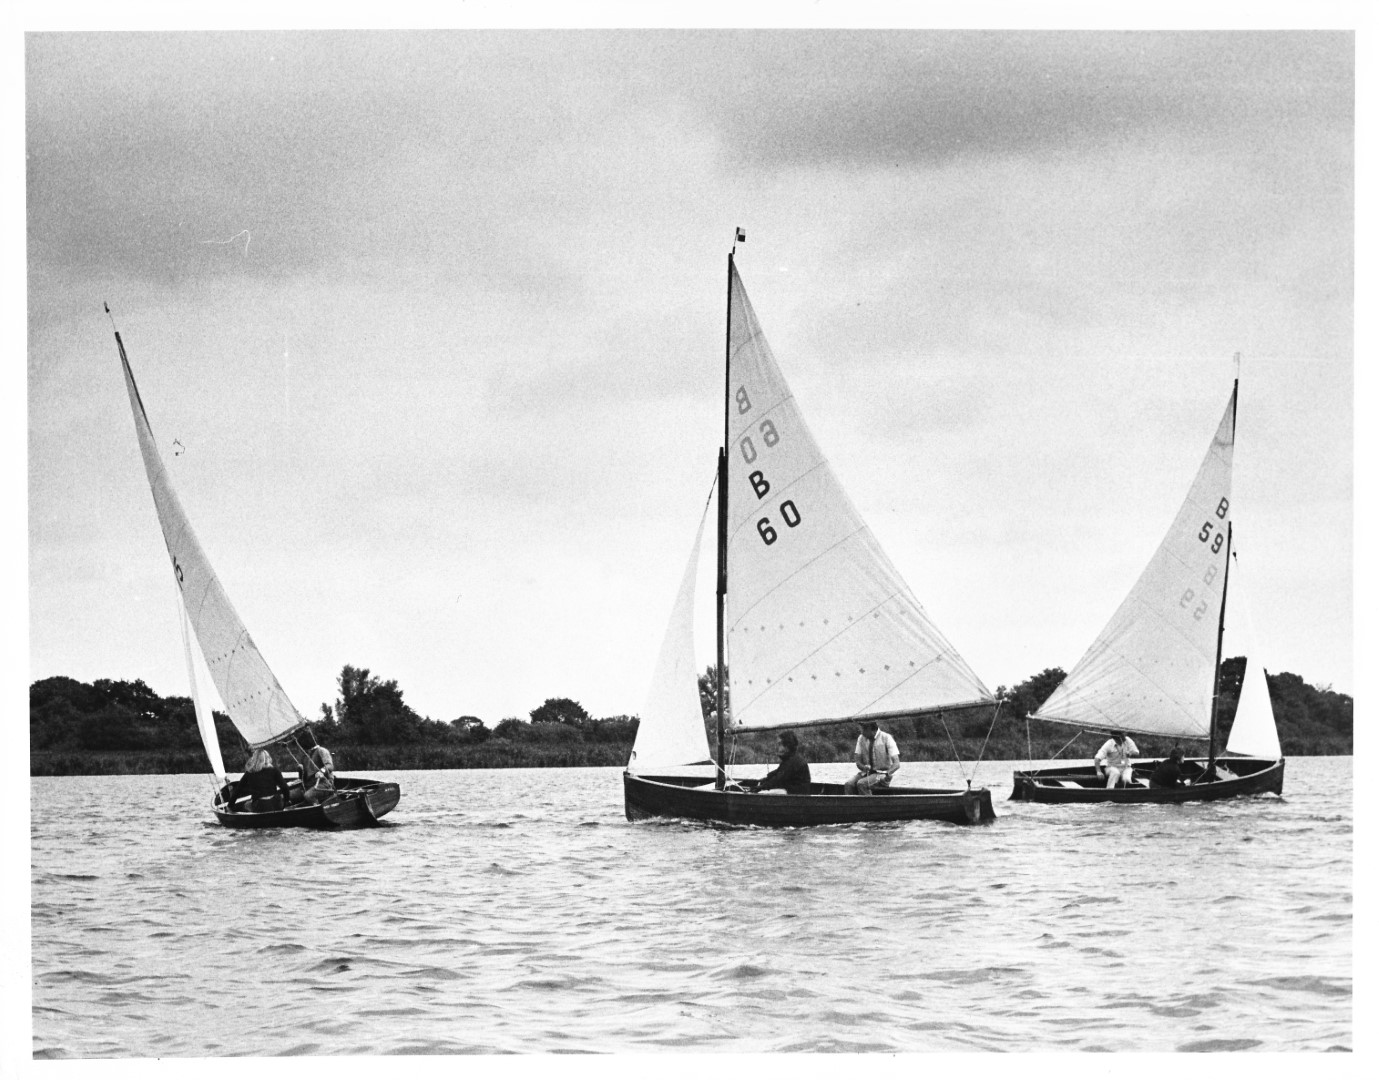 Norfolk Dinghy Championships 1975 - Martin Broom B59 takes the lead